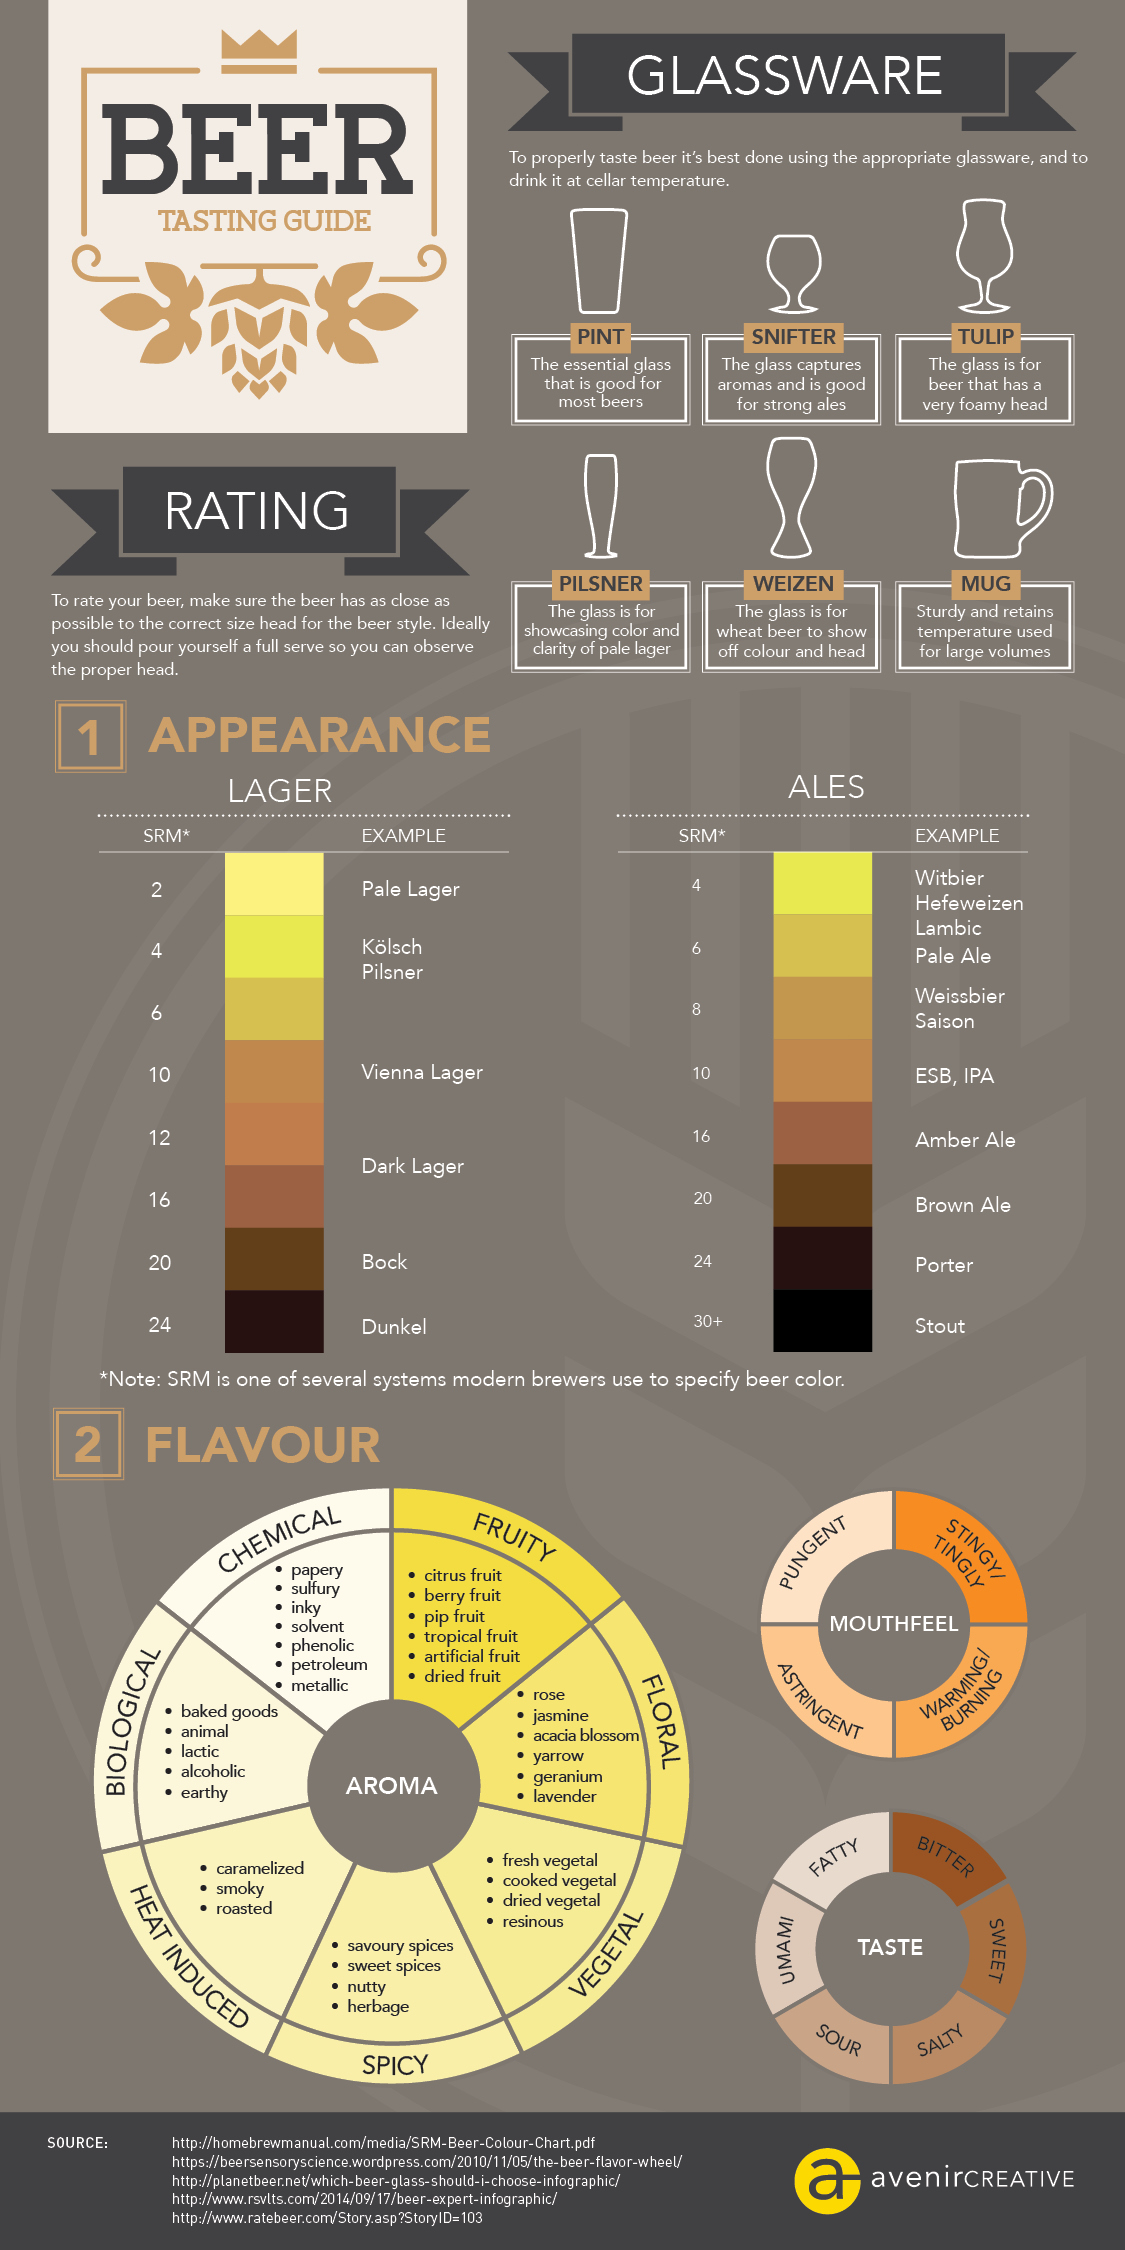 Avenircreative-Beer-Infographic.jpg